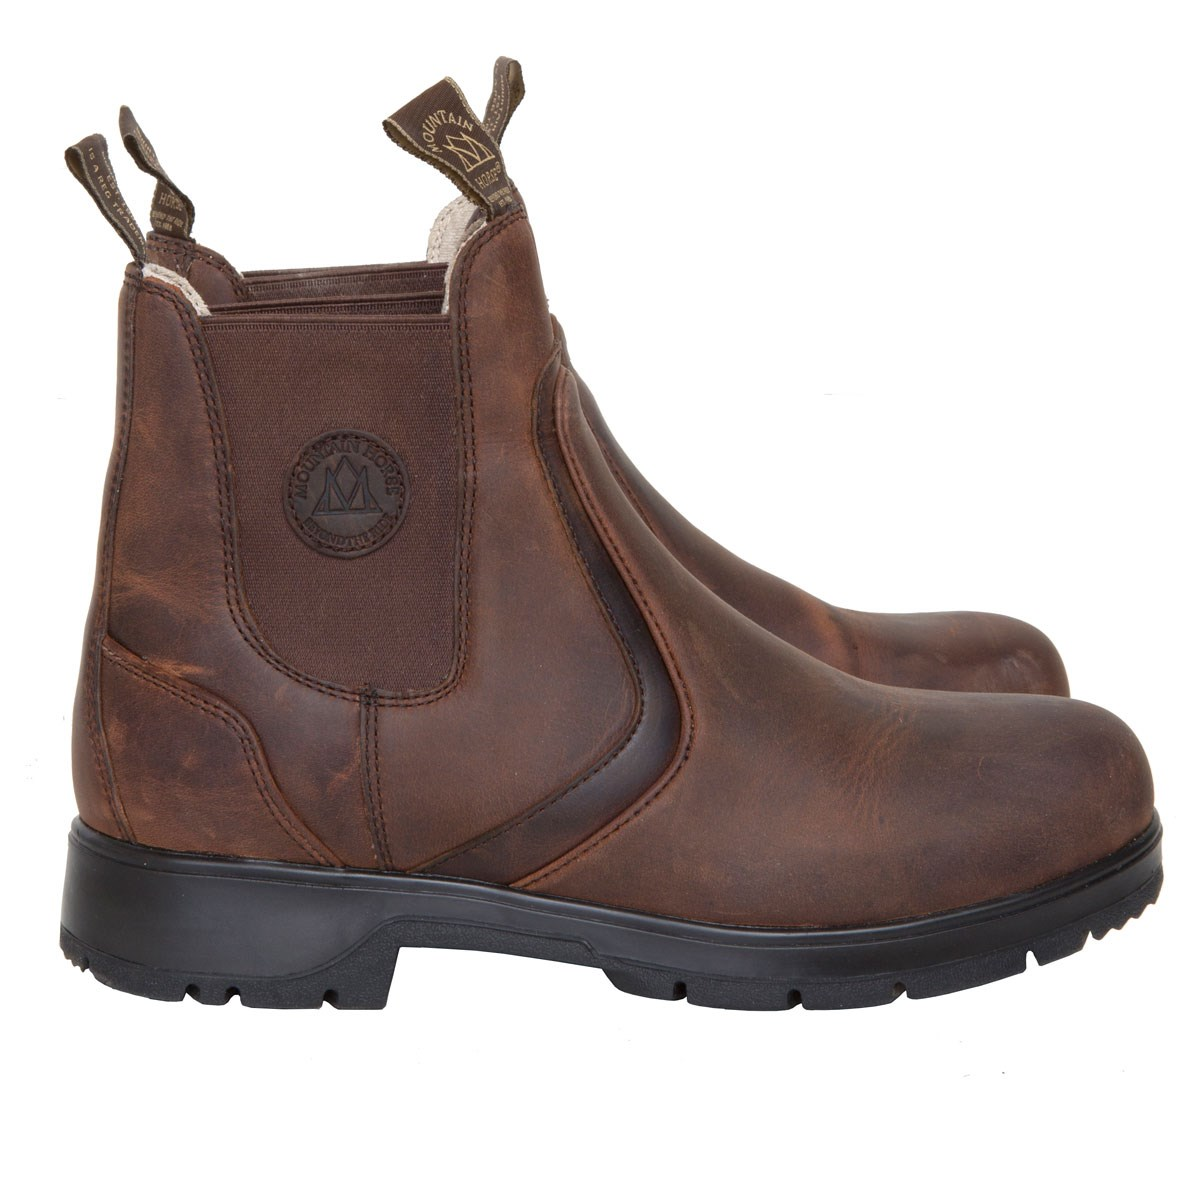 9556f0f7d56e Mountain Horse Spring River Ladies Jodhpur Boots - Brown - Redpost  Equestrian